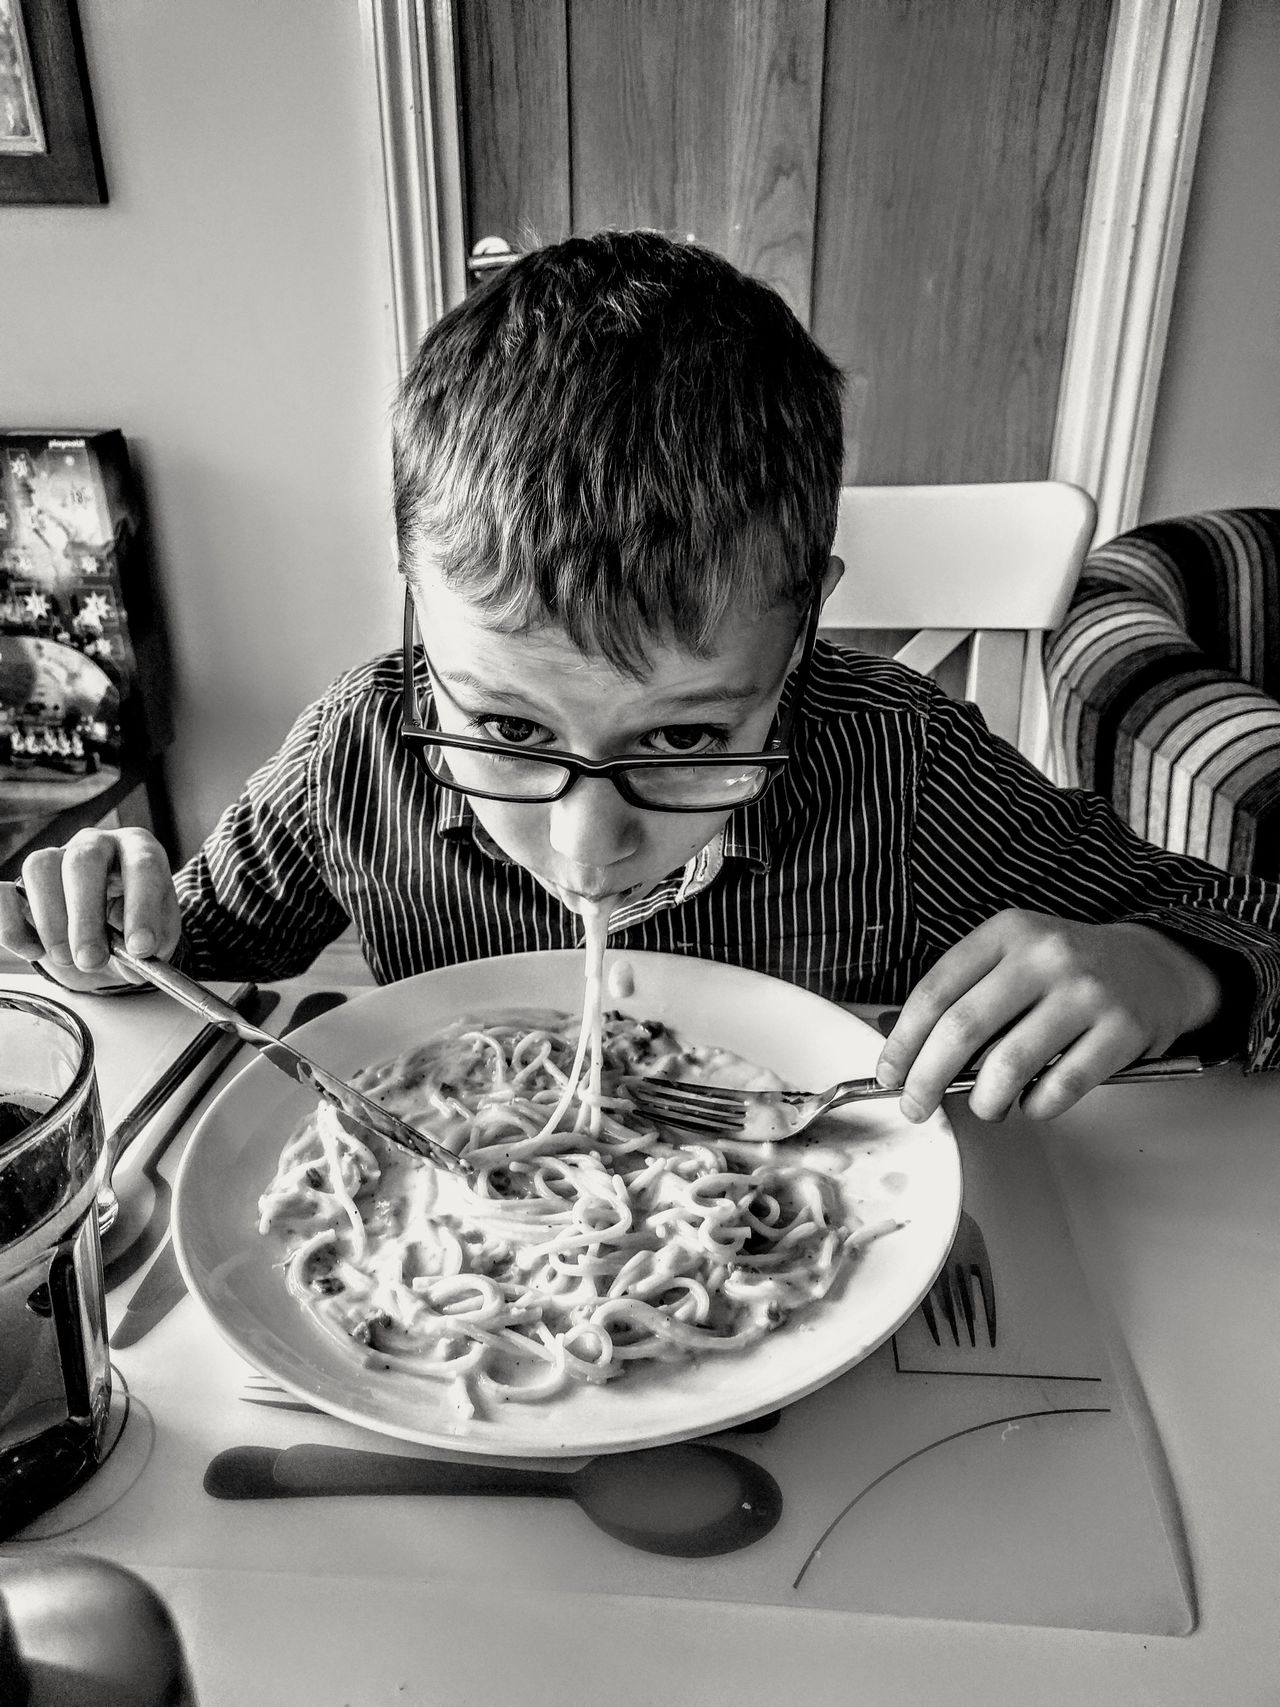 Love Spaghetti! Boy meal food dishes specs Child One Boy Only Table Food Healthy Eating Childhood People Children Only Squiggles Squiggle Real People One Person